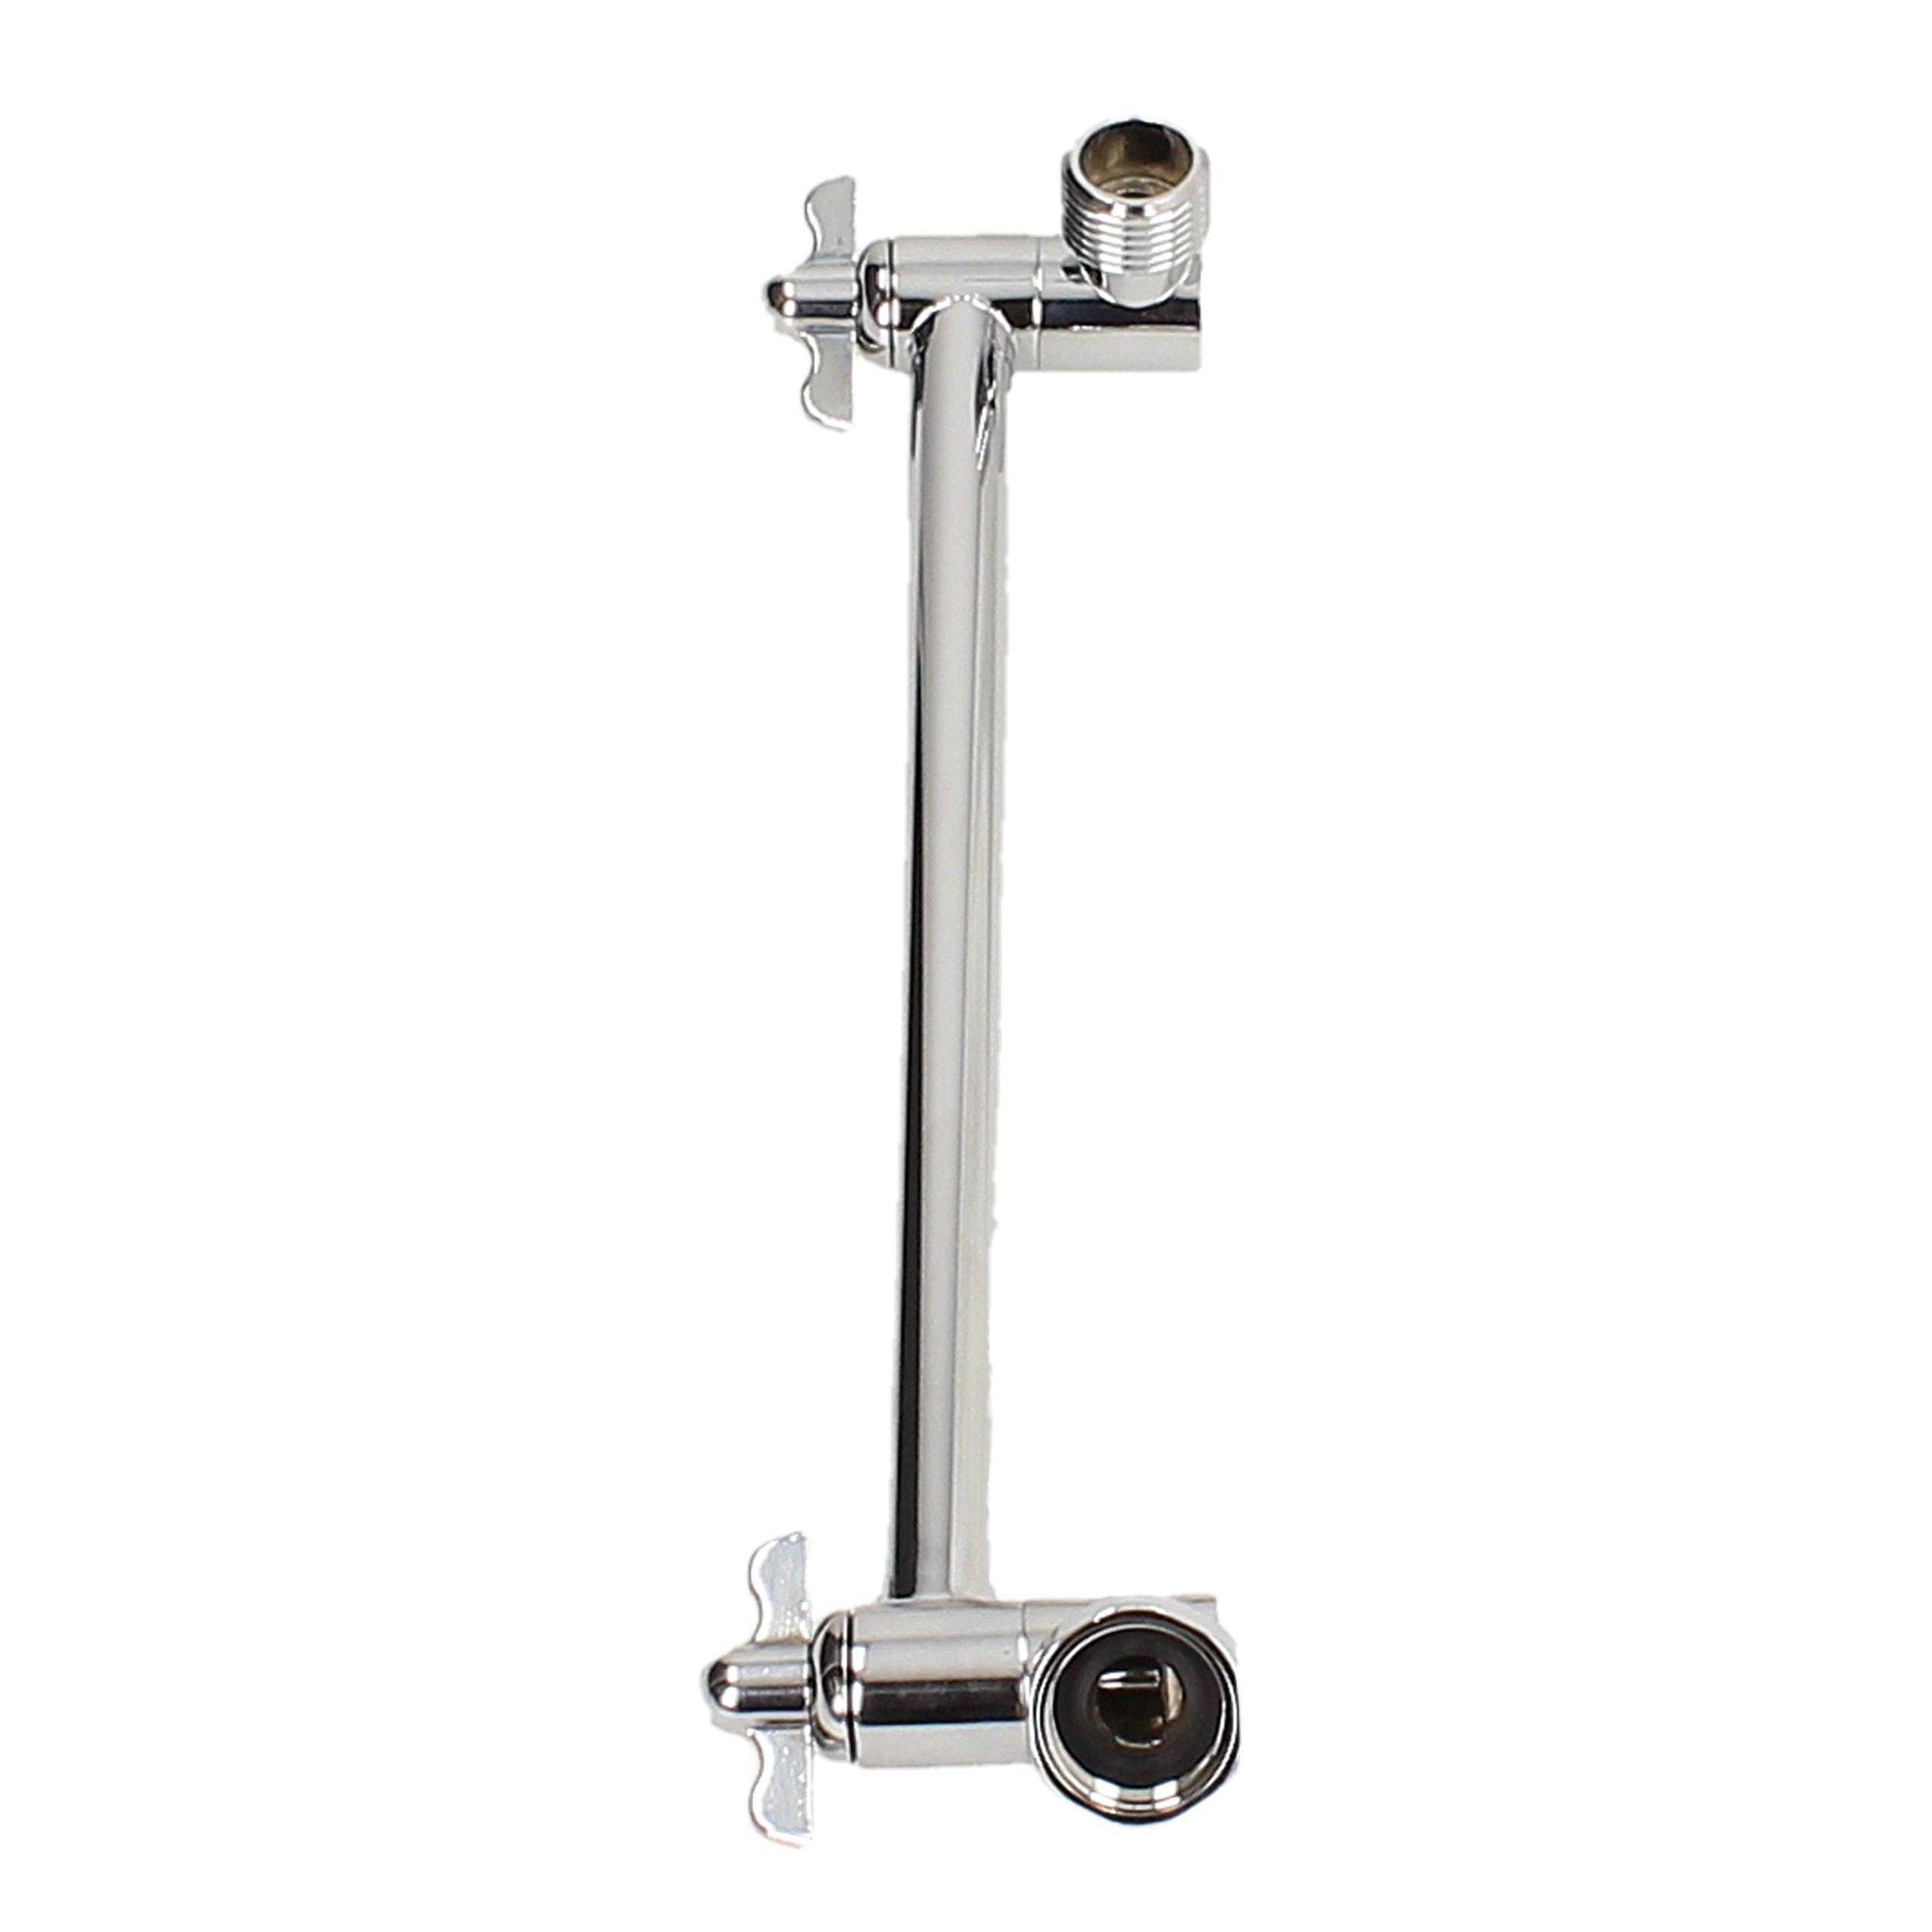 Telescoping Shower Arm : Axis adjustable shower arm heads and hoses